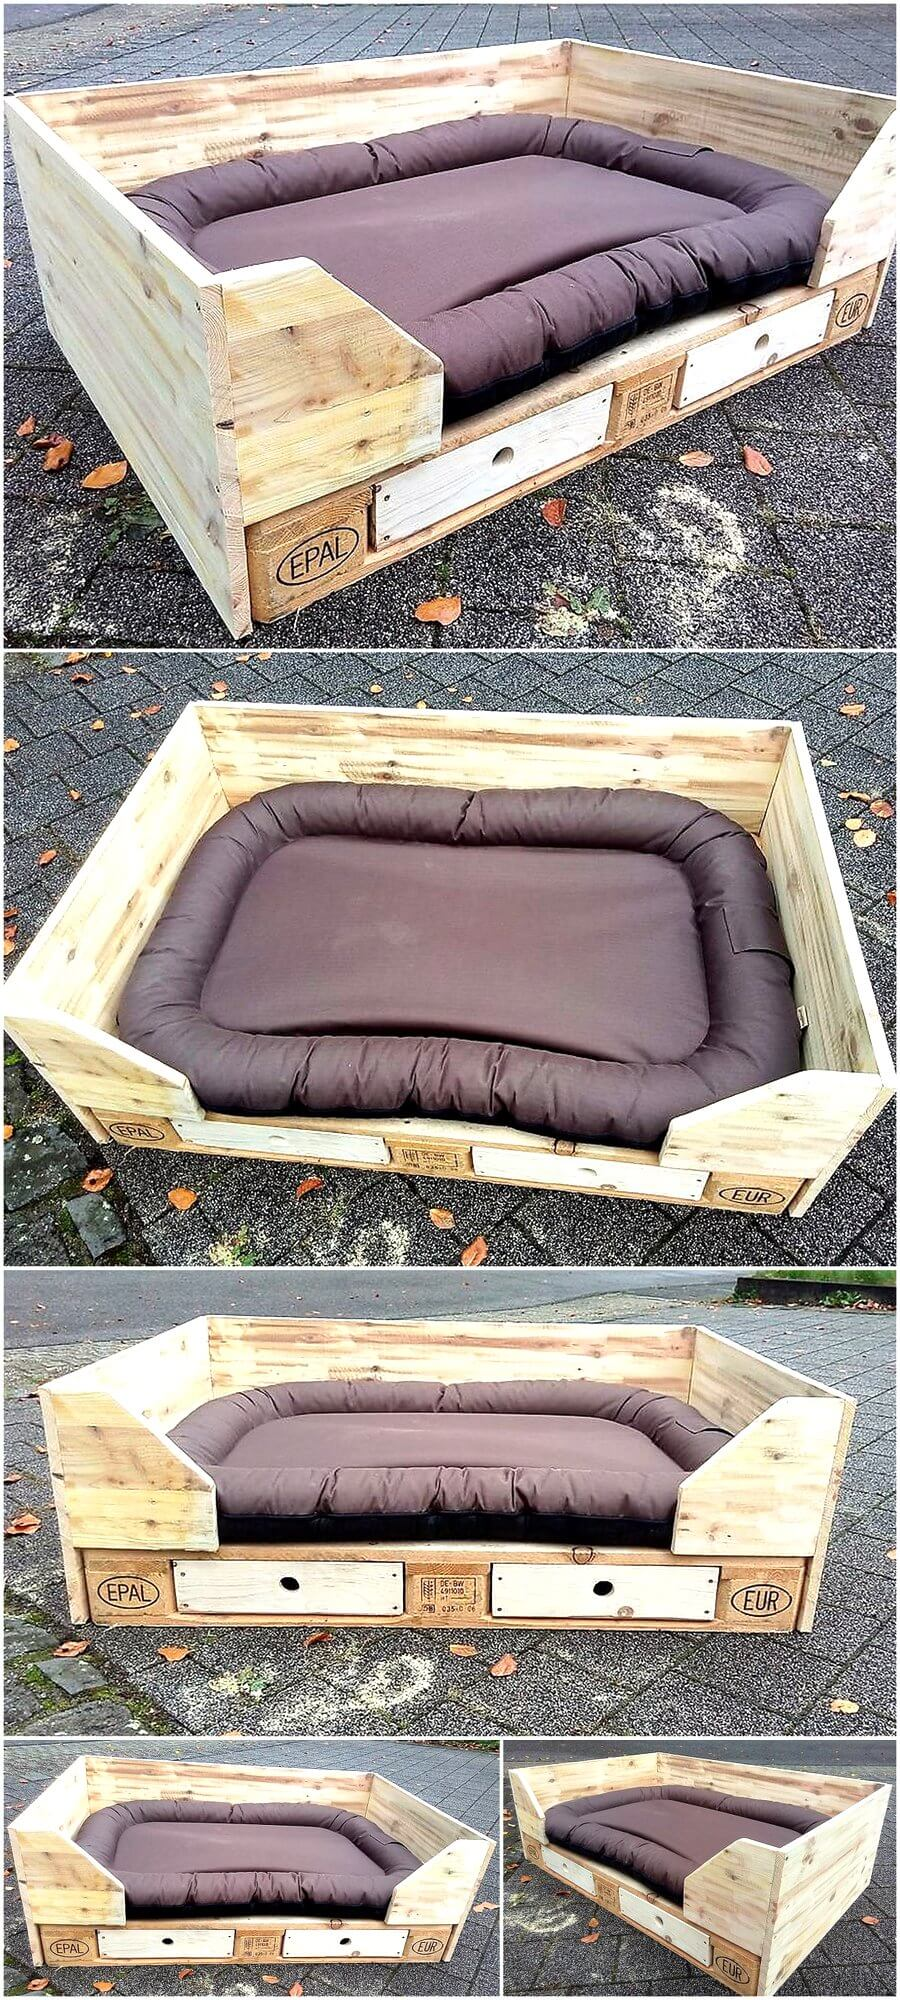 Cute Dog Bed Out of Recycled Pallets